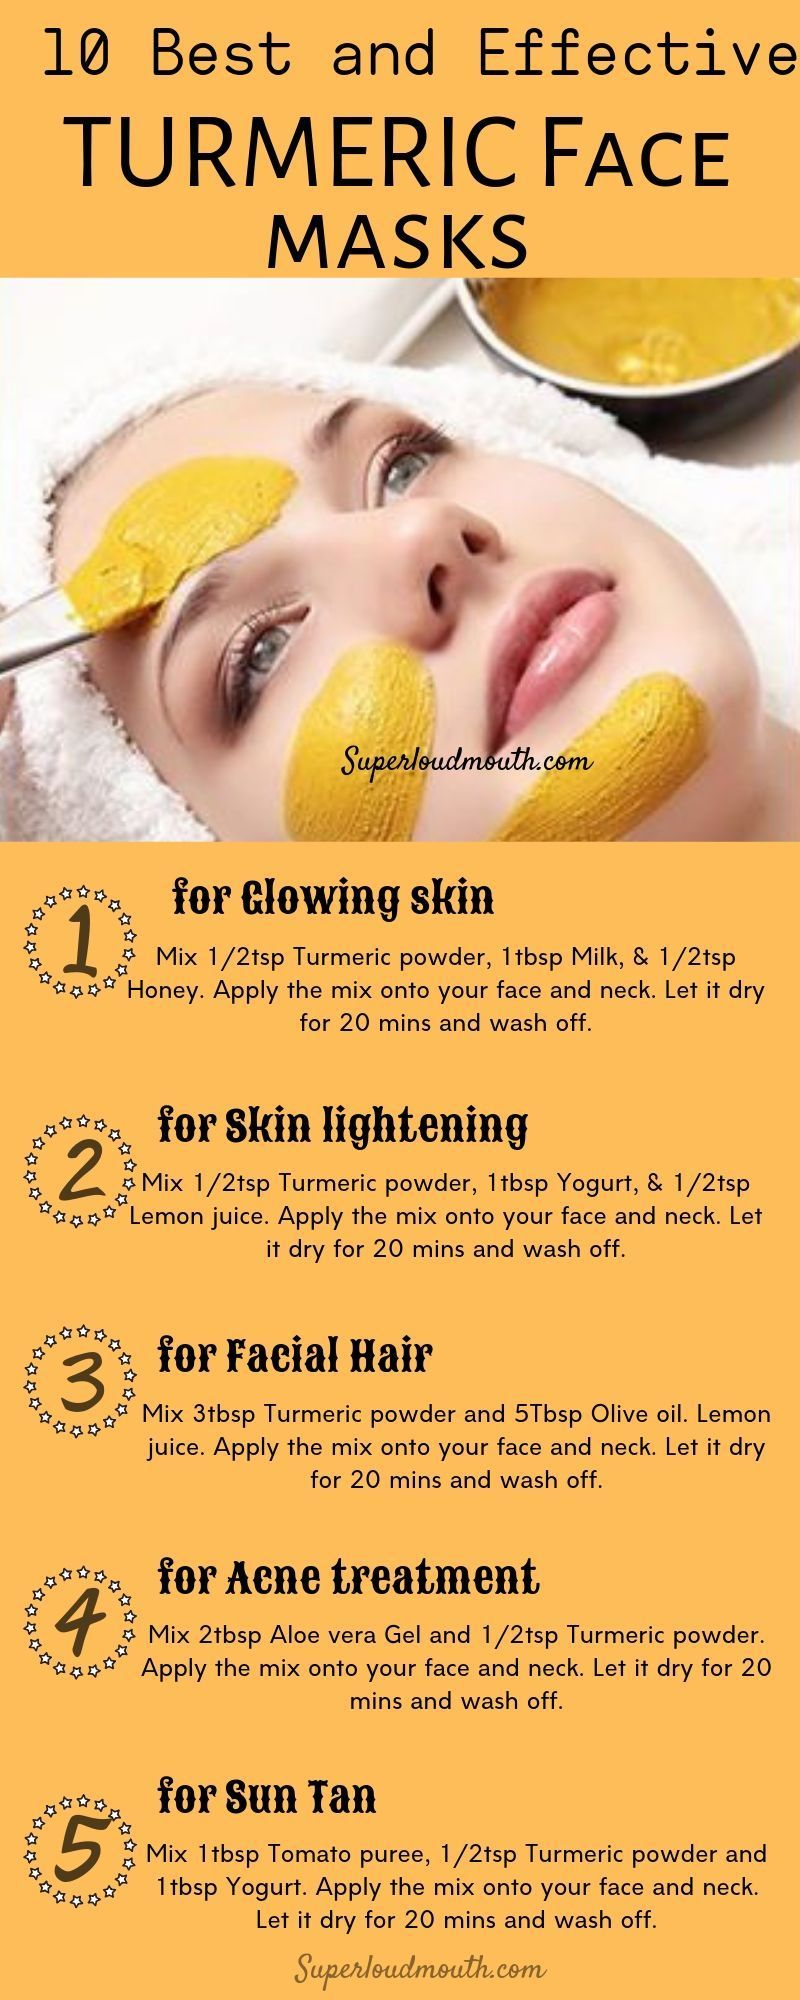 Diy turmeric face masks for all skin problems - #diy #Face #Masks #problems #skin #TURMERIC #skin